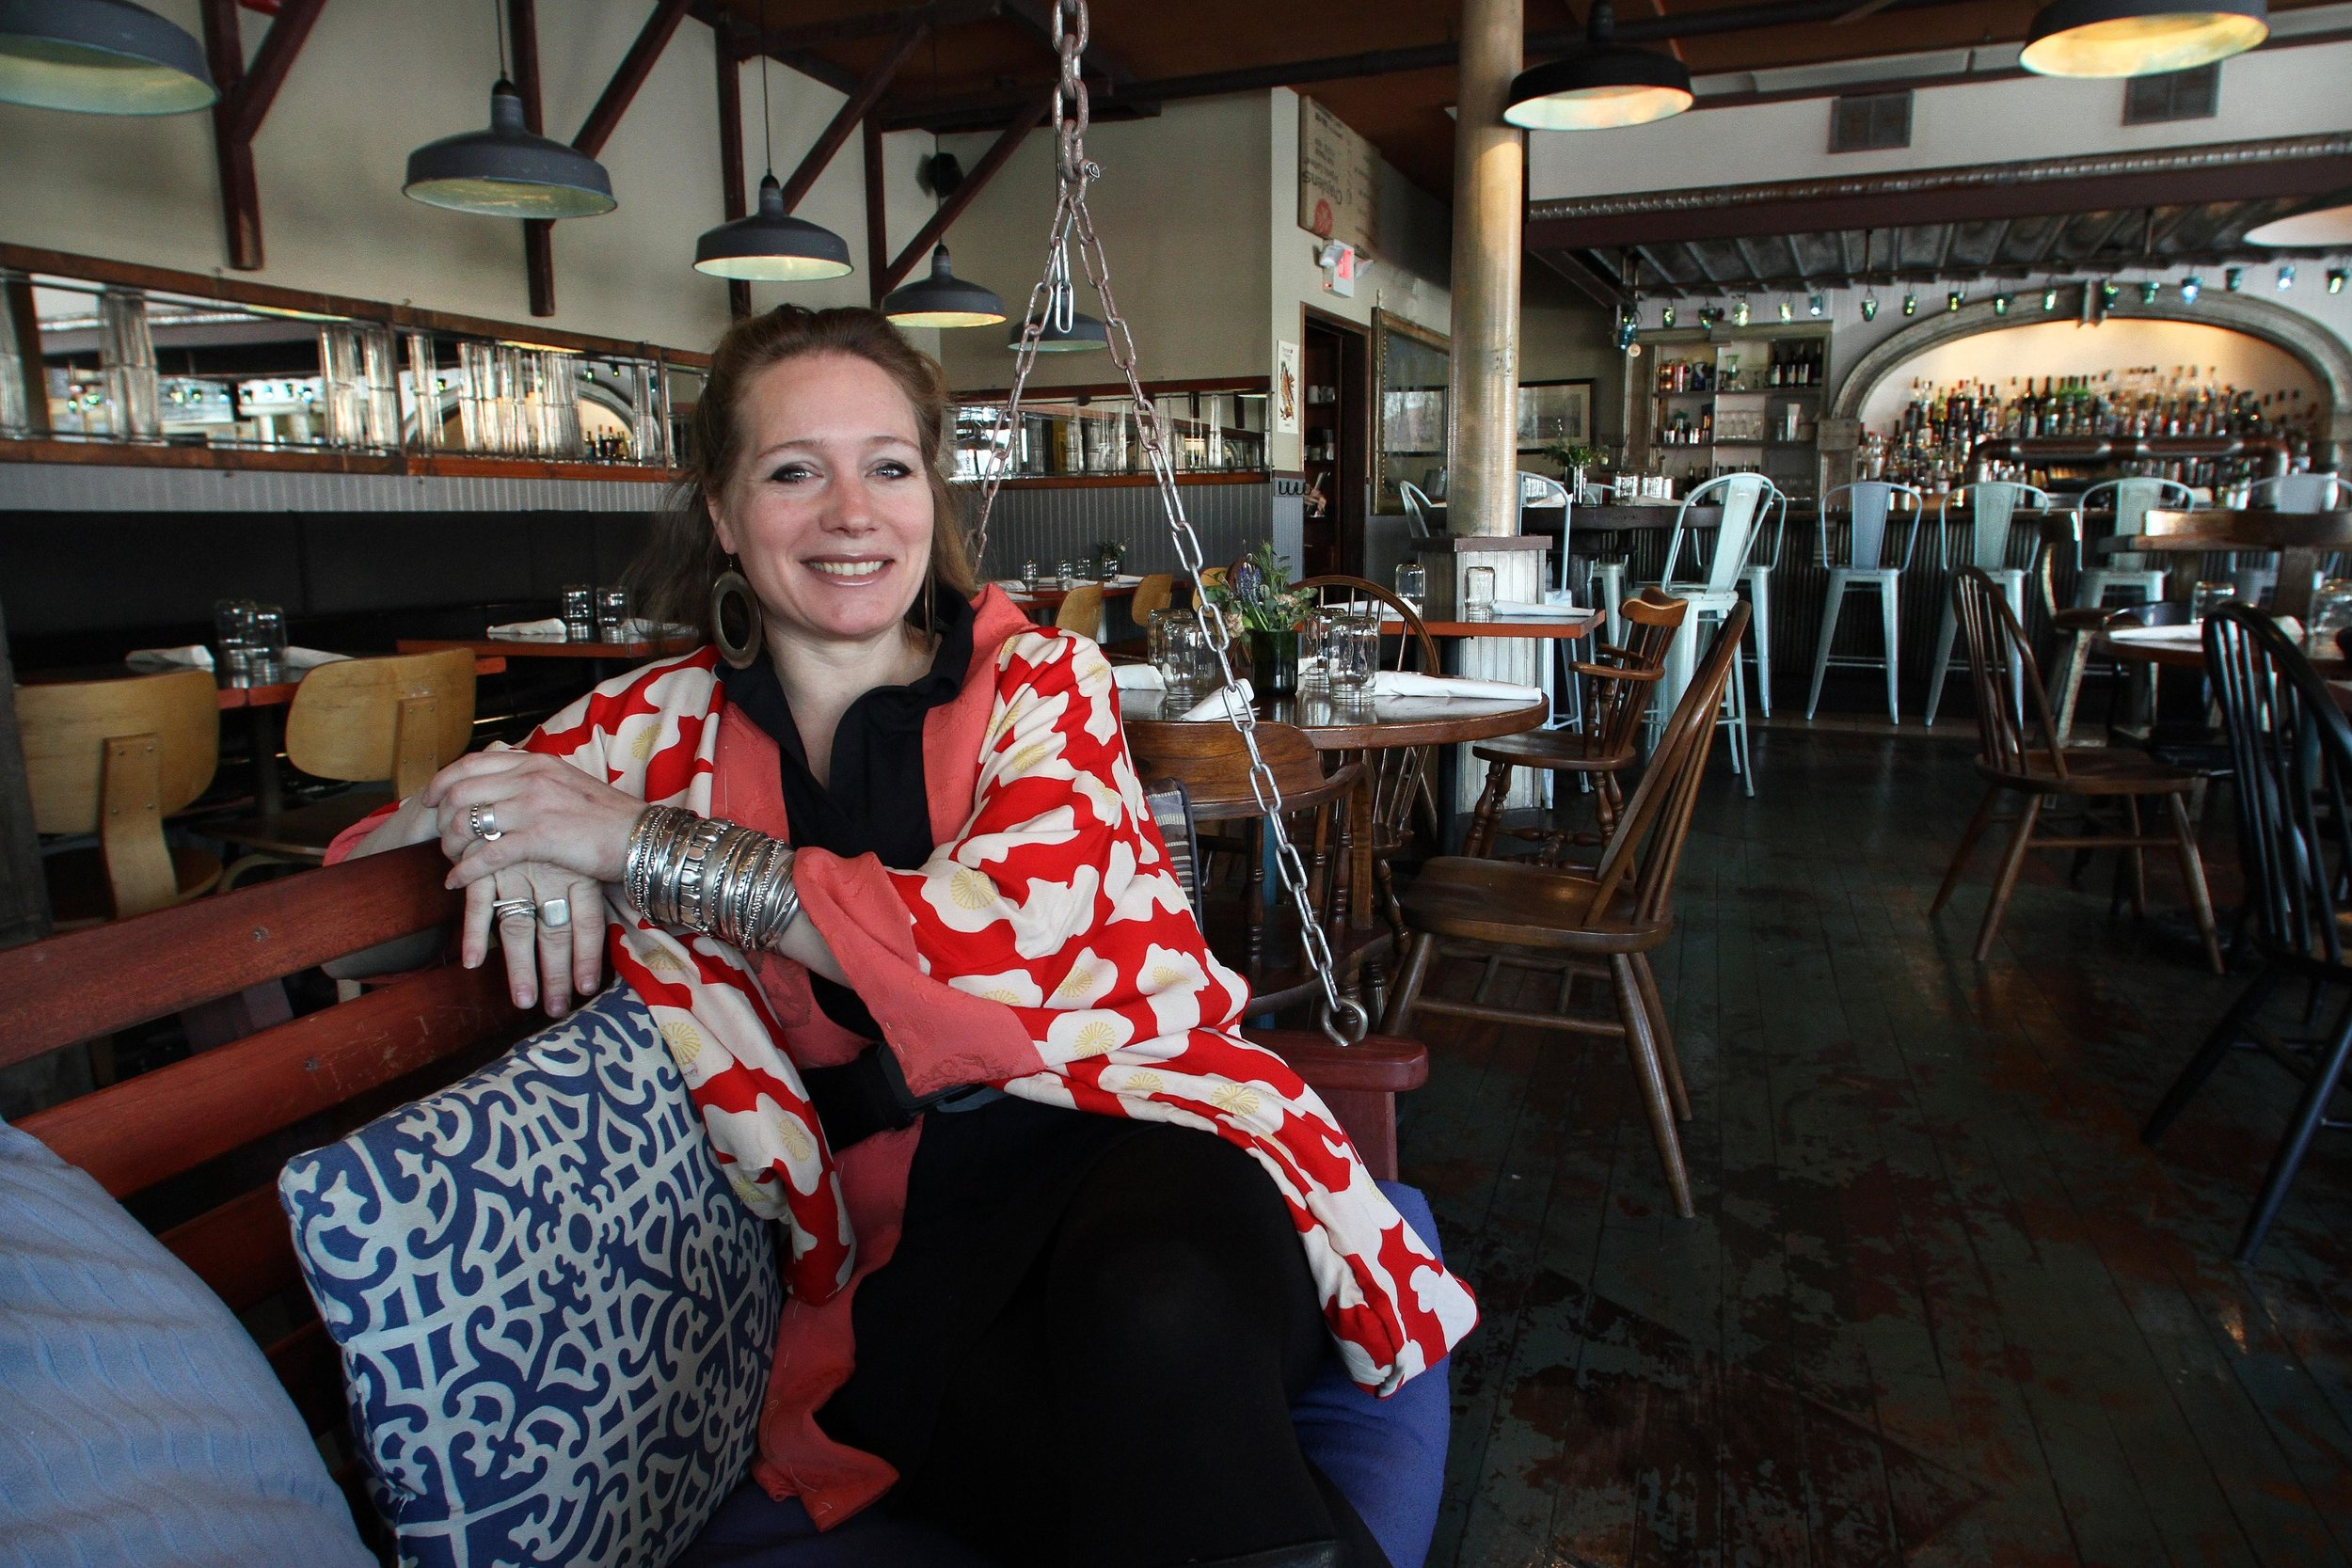 Kyla Coburn at The Grange, in Providence, which she designed about 2.5 years ago. Coburn, a recent inductee to the RI Design Hall of Fame, is known for a hip, eclectic look that re-purposes found items, such as this porch swing in The Grange's waiting area. Photo Credit: The Providence Journal/Bob Breidenbach